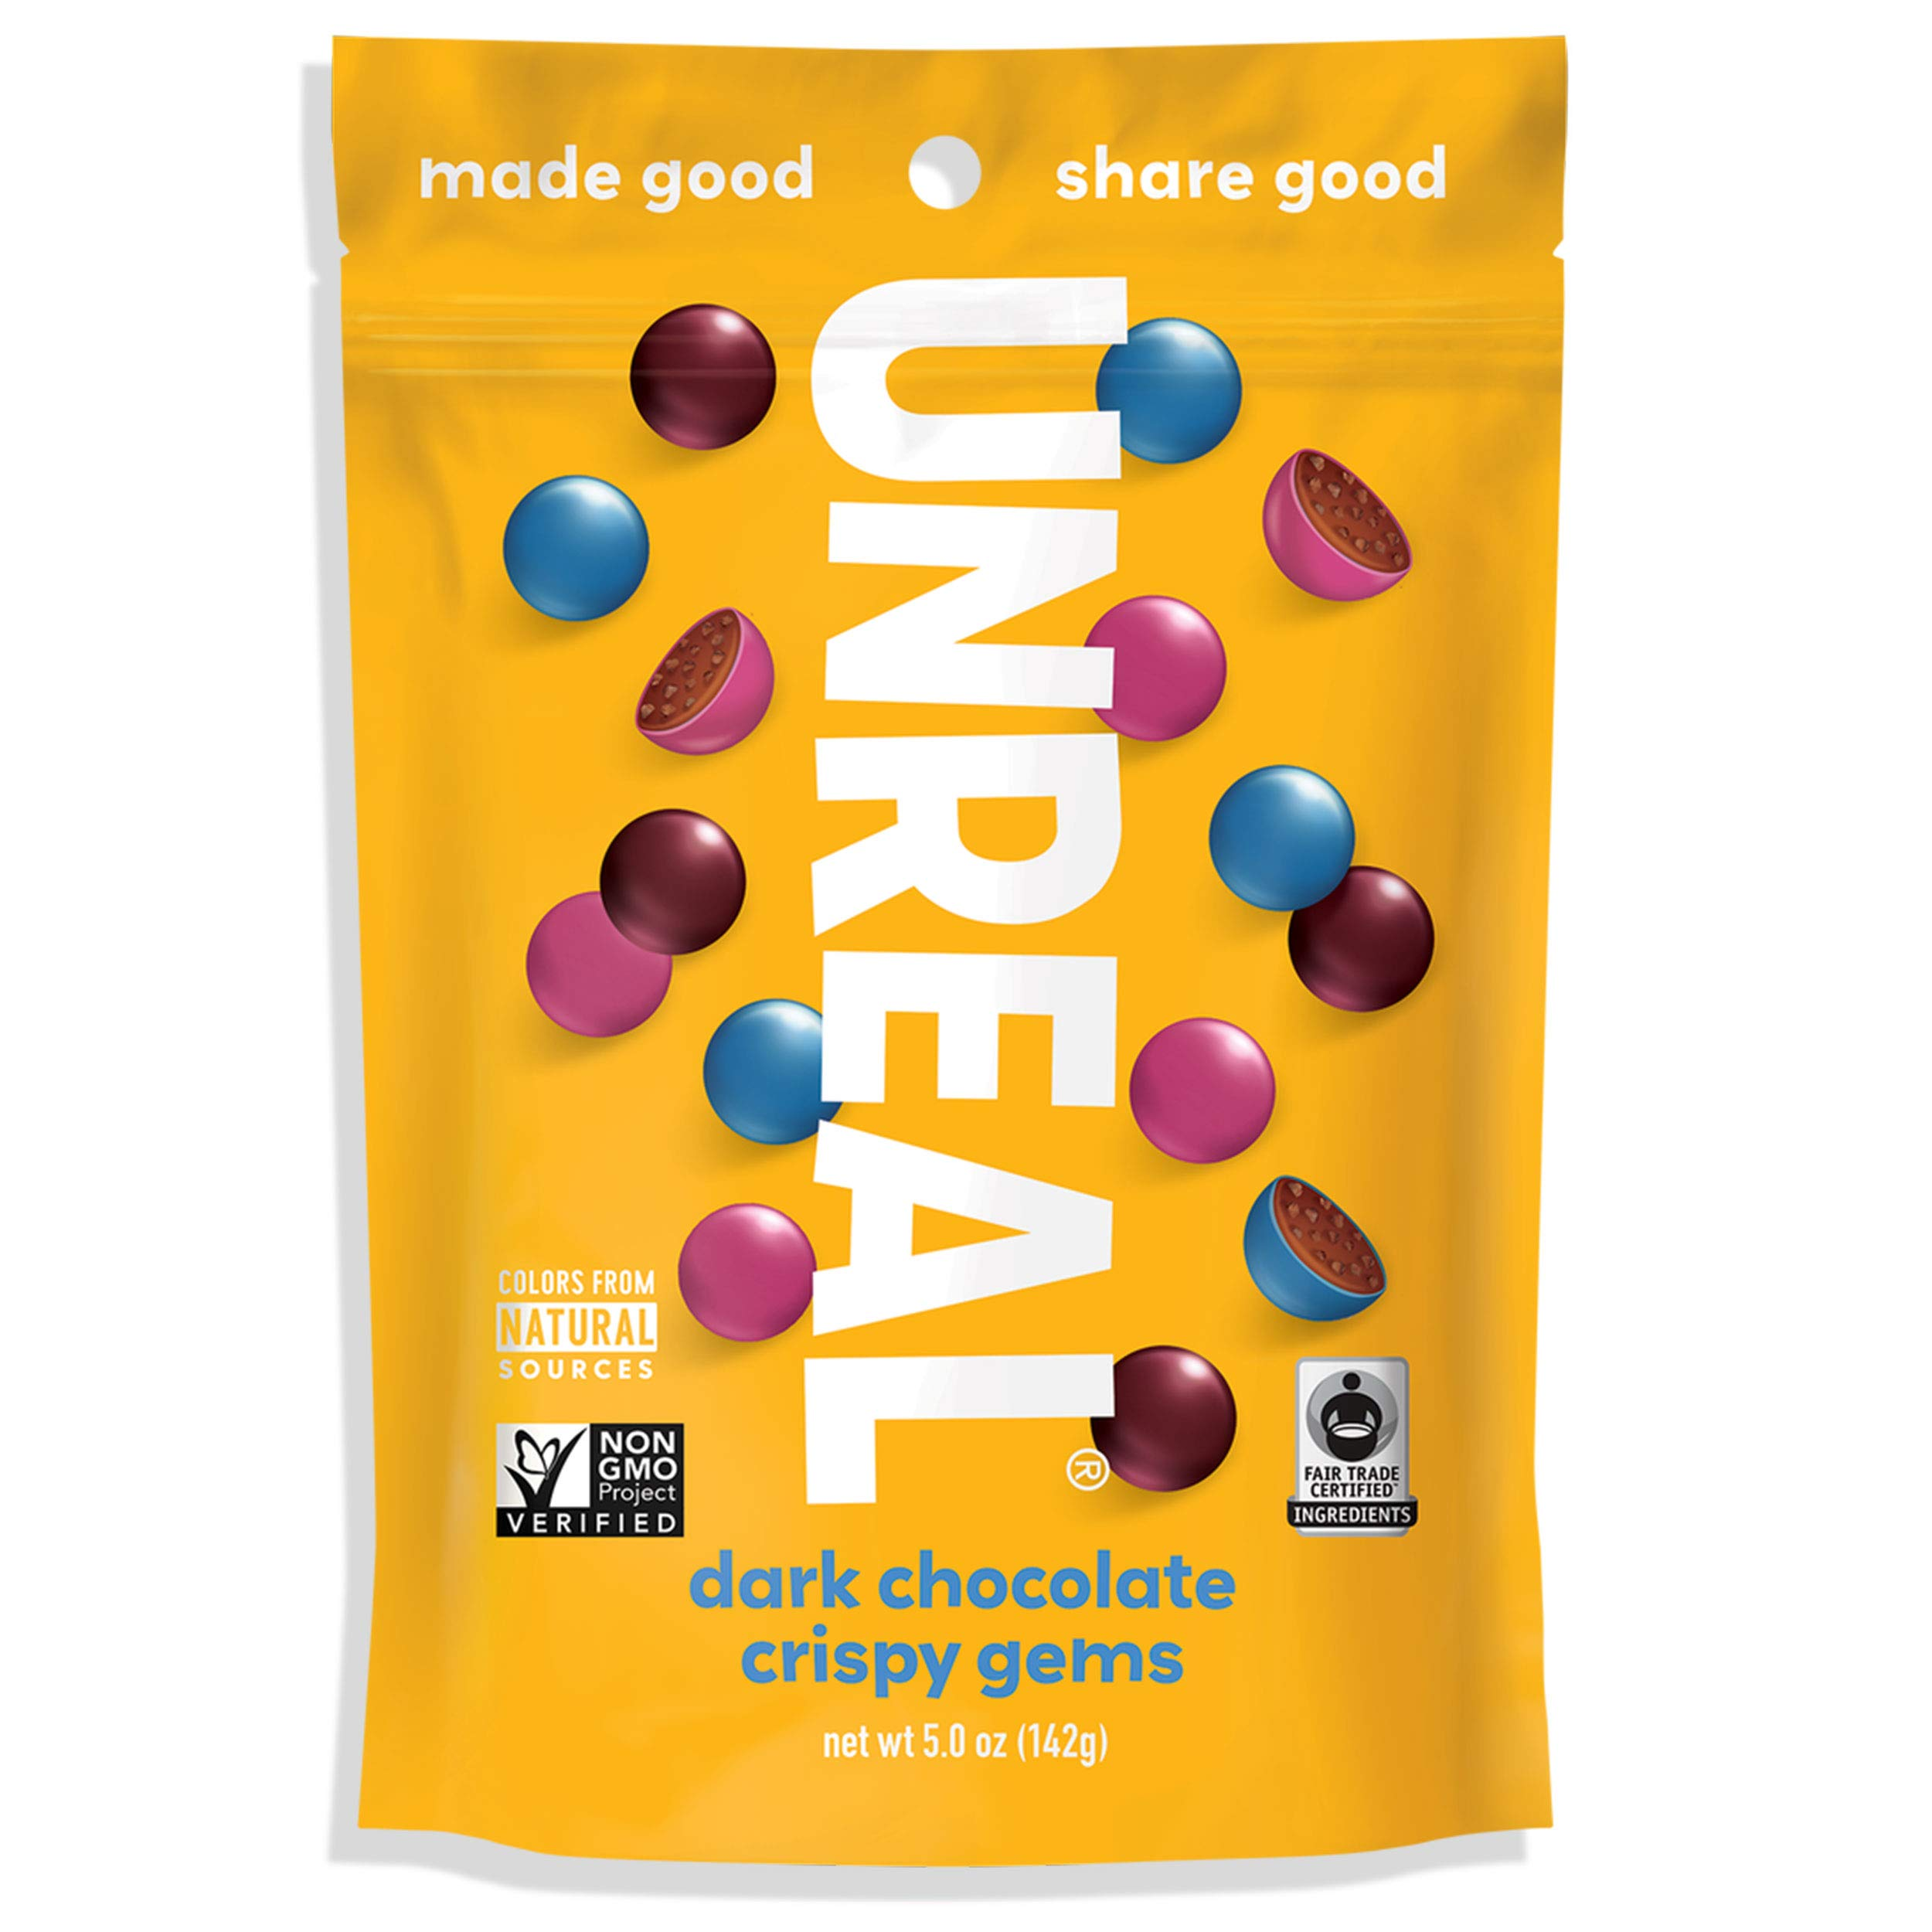 UNREAL Dark Chocolate Crispy Quinoa Gems | Non-GMO, Vegan Certified, Colors from Nature | 3 Bags by UNREAL